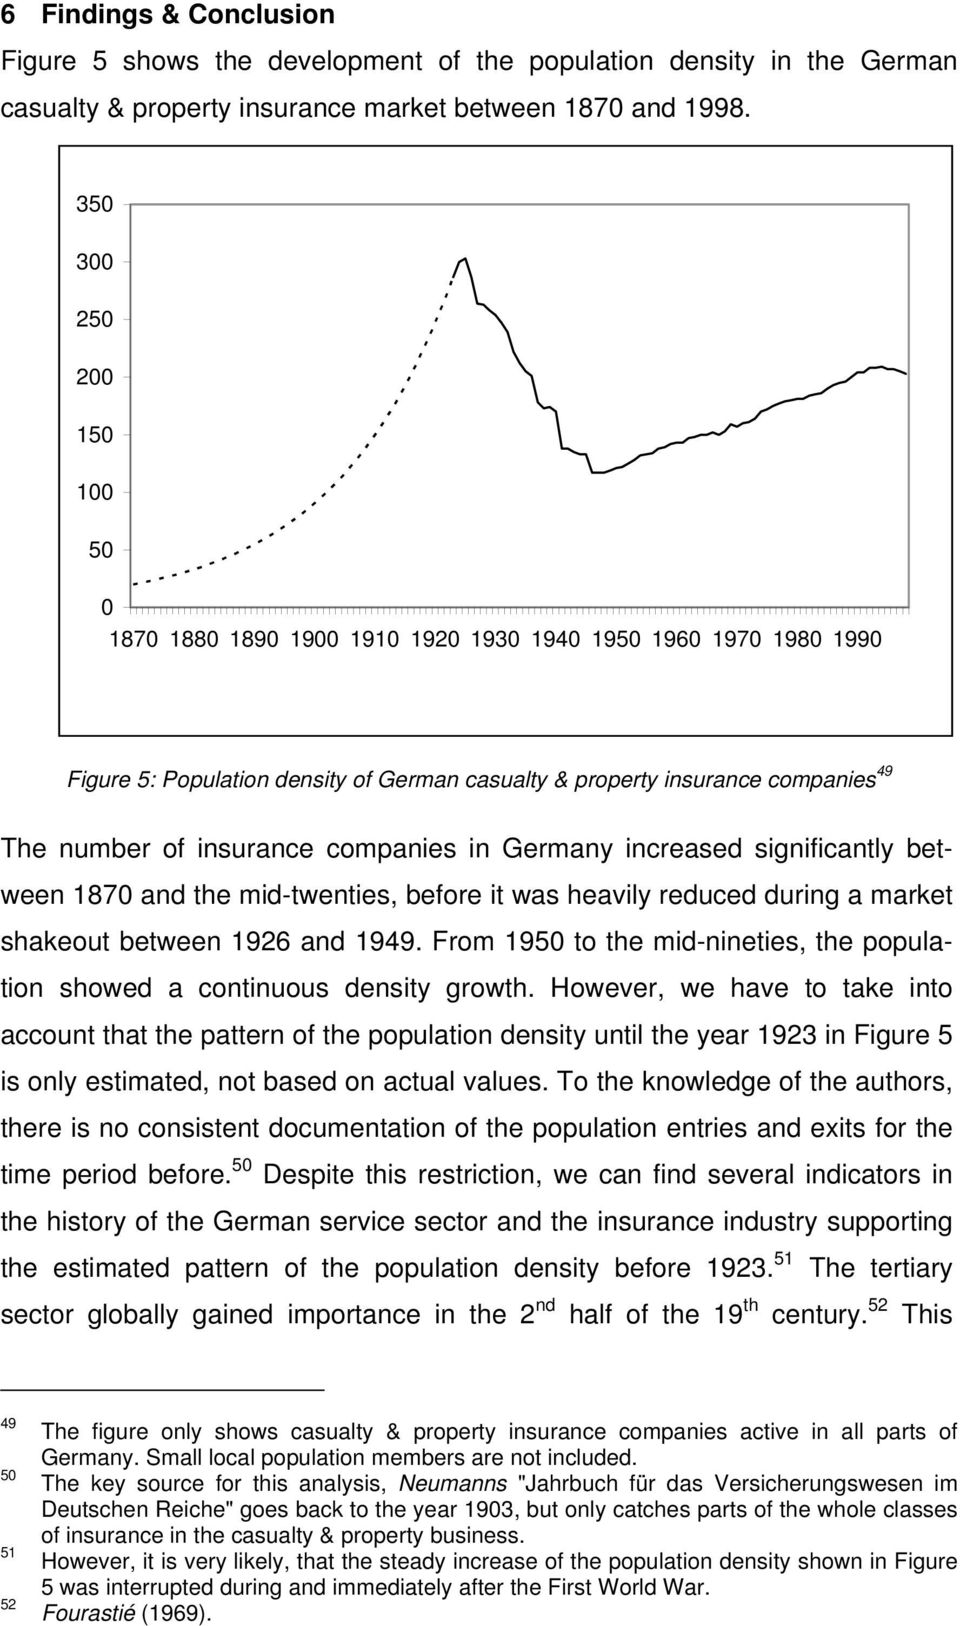 companies in Germany increased significantly between 1870 and the mid-twenties, before it was heavily reduced during a market shakeout between 1926 and 1949.